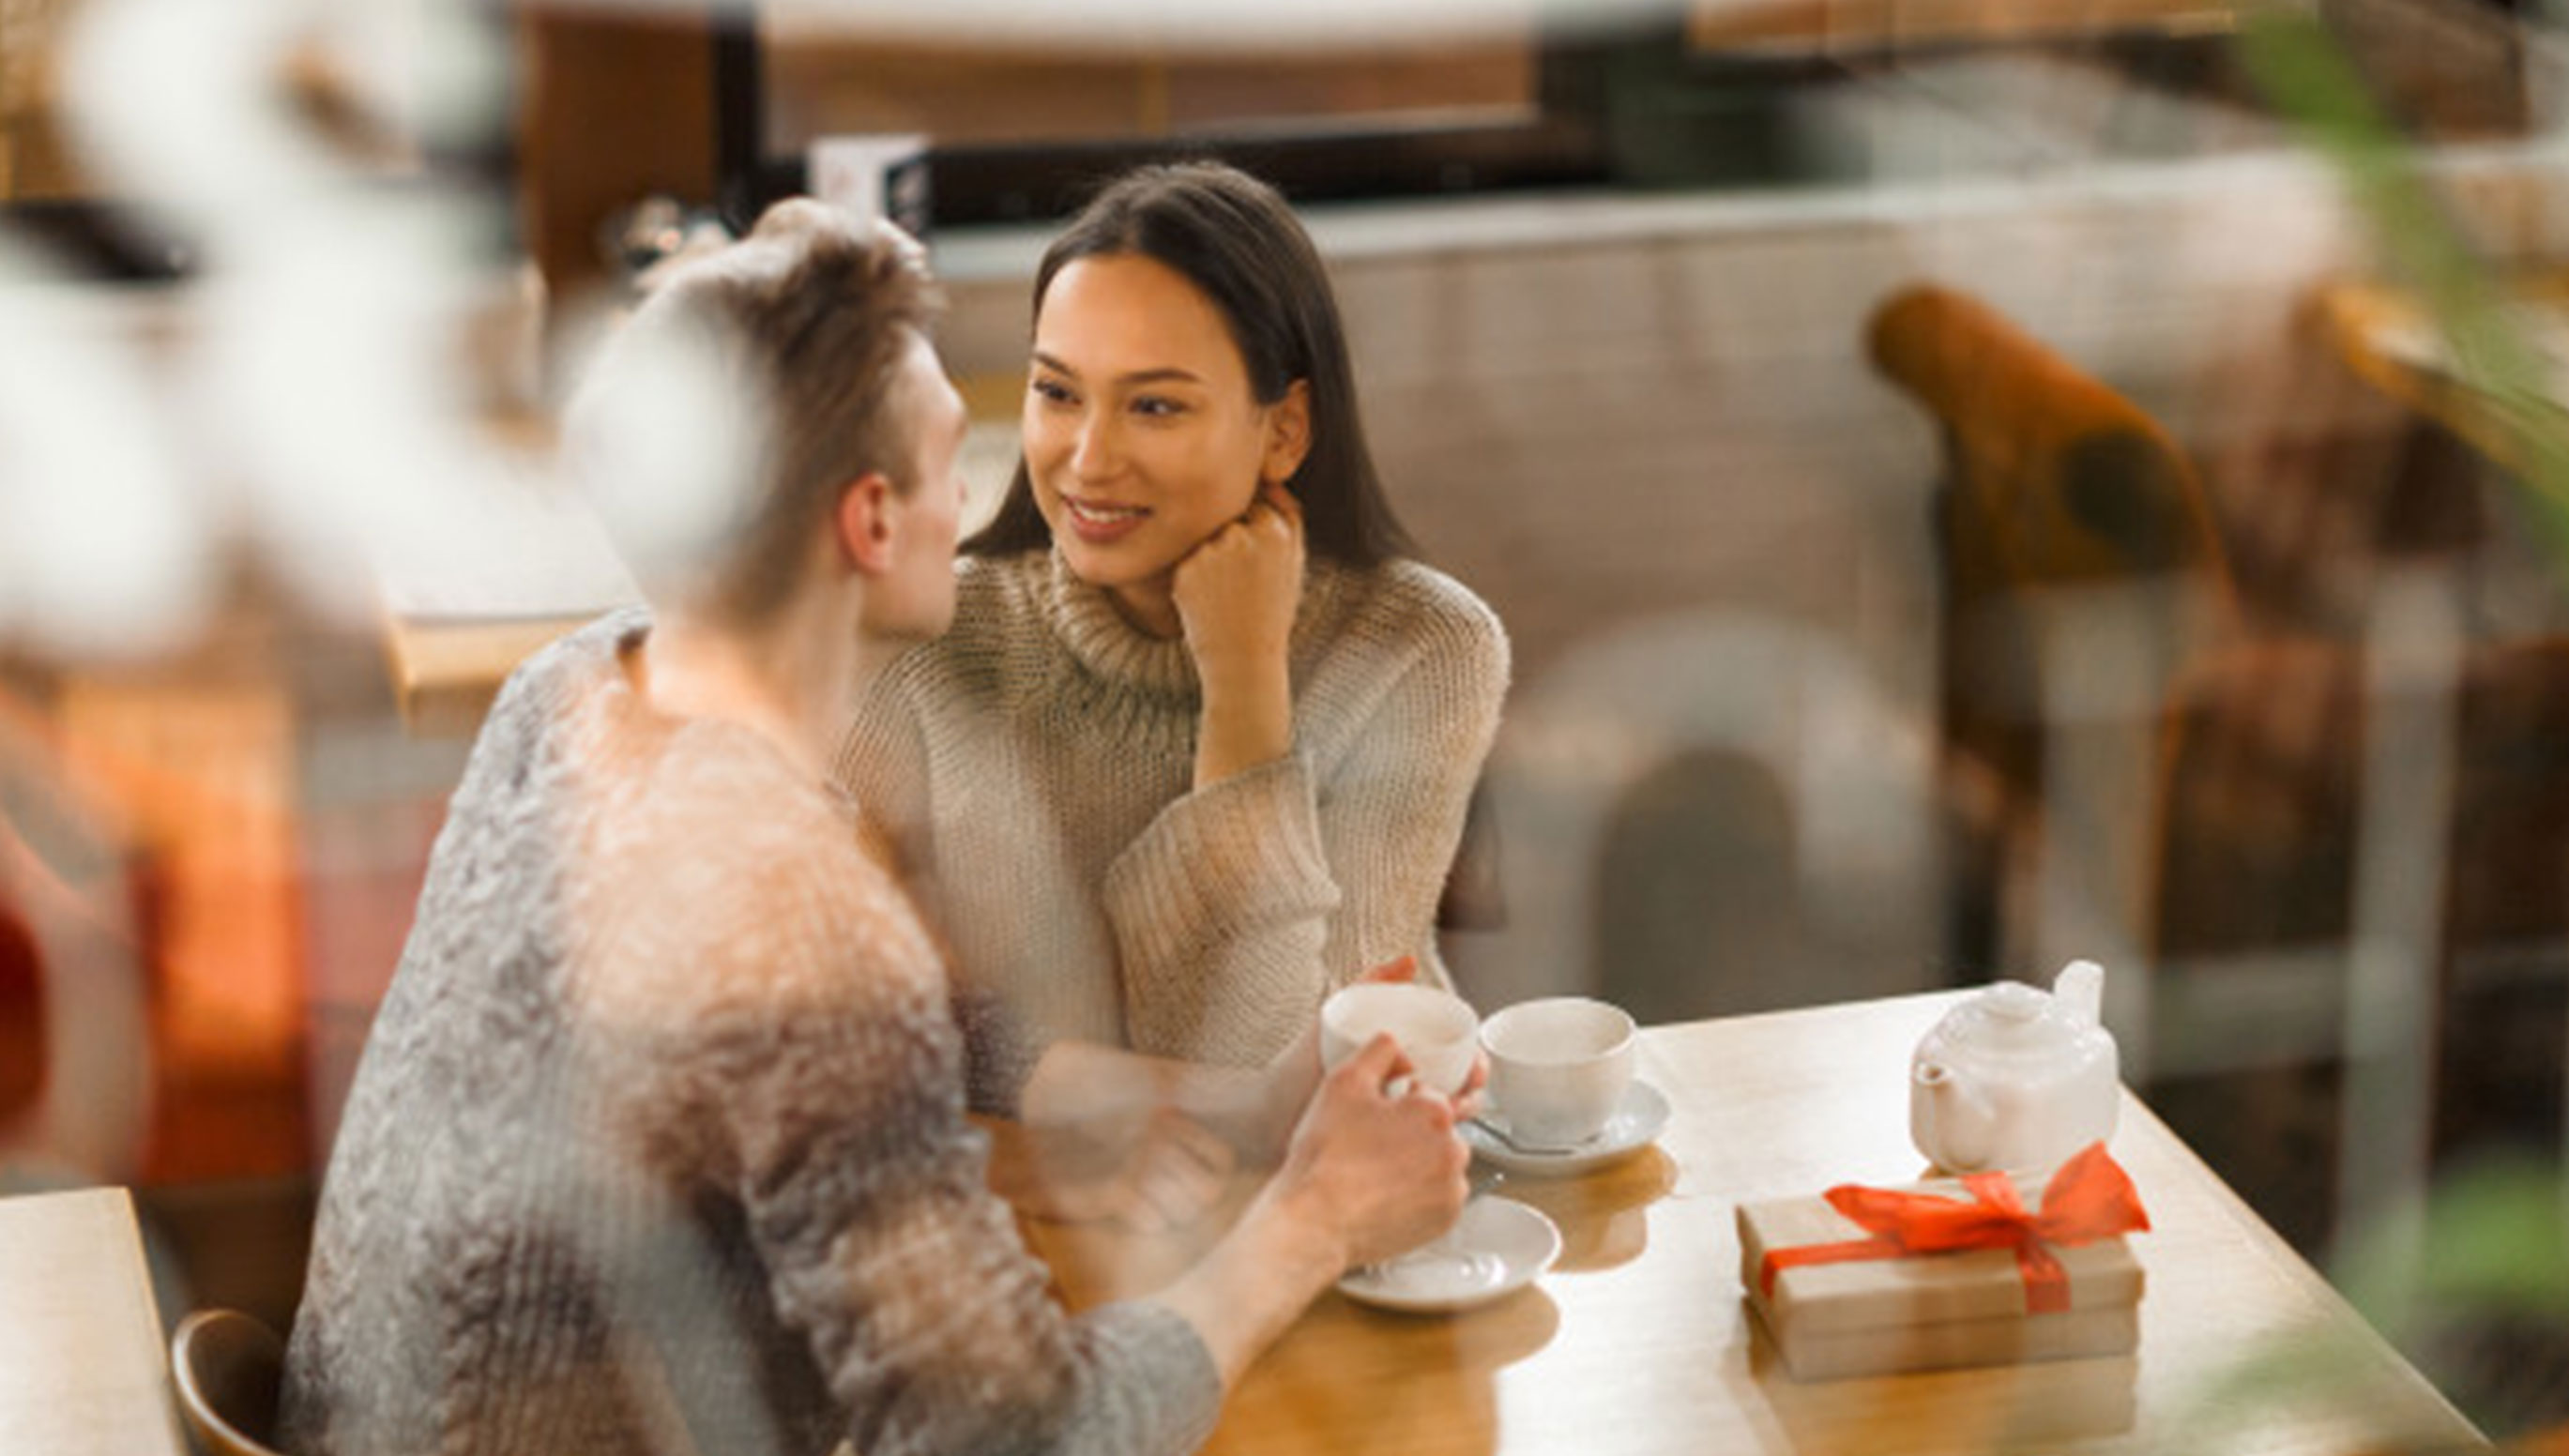 HChristmas Date Ideas for Couples in the City